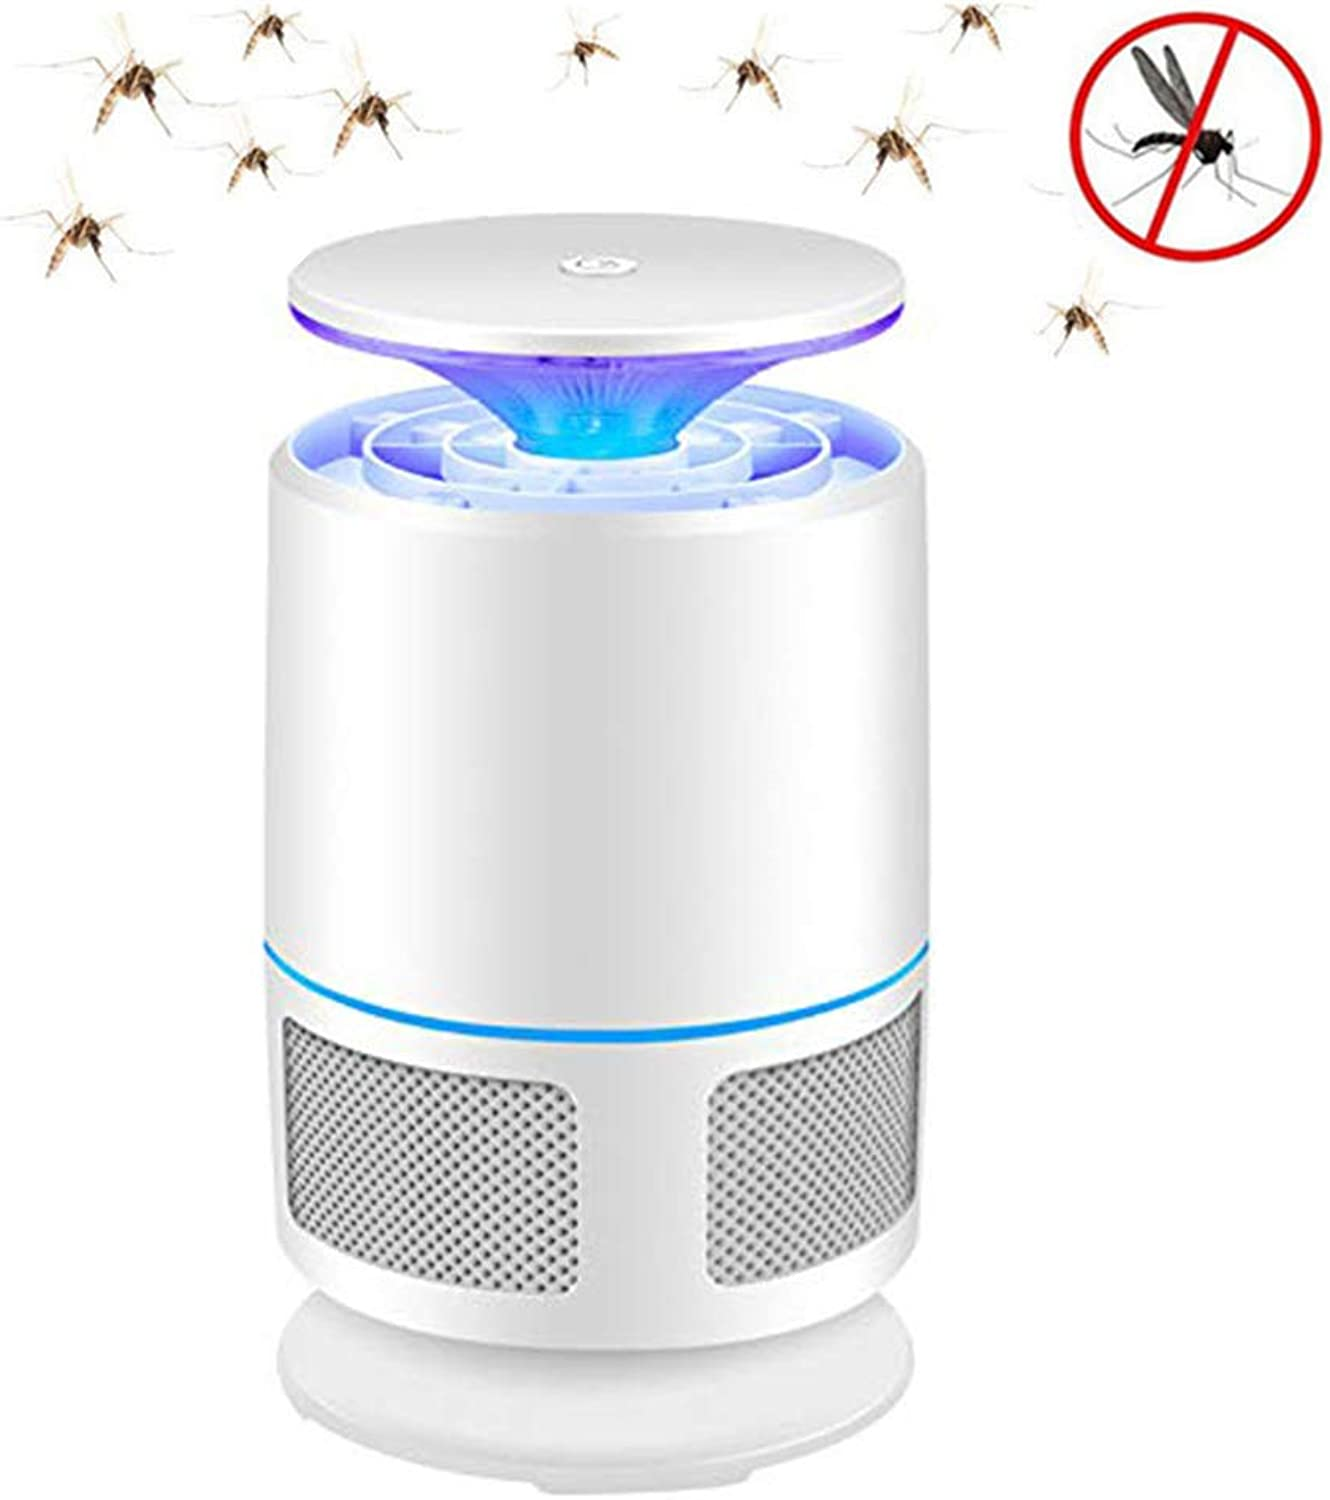 Bug Zapper,Electronic Mosquito Killer Lamp,UV LED Mosquitoes Catcher,USB Powered,ChemicalFree,UltraSilence,for Indoor and Camping